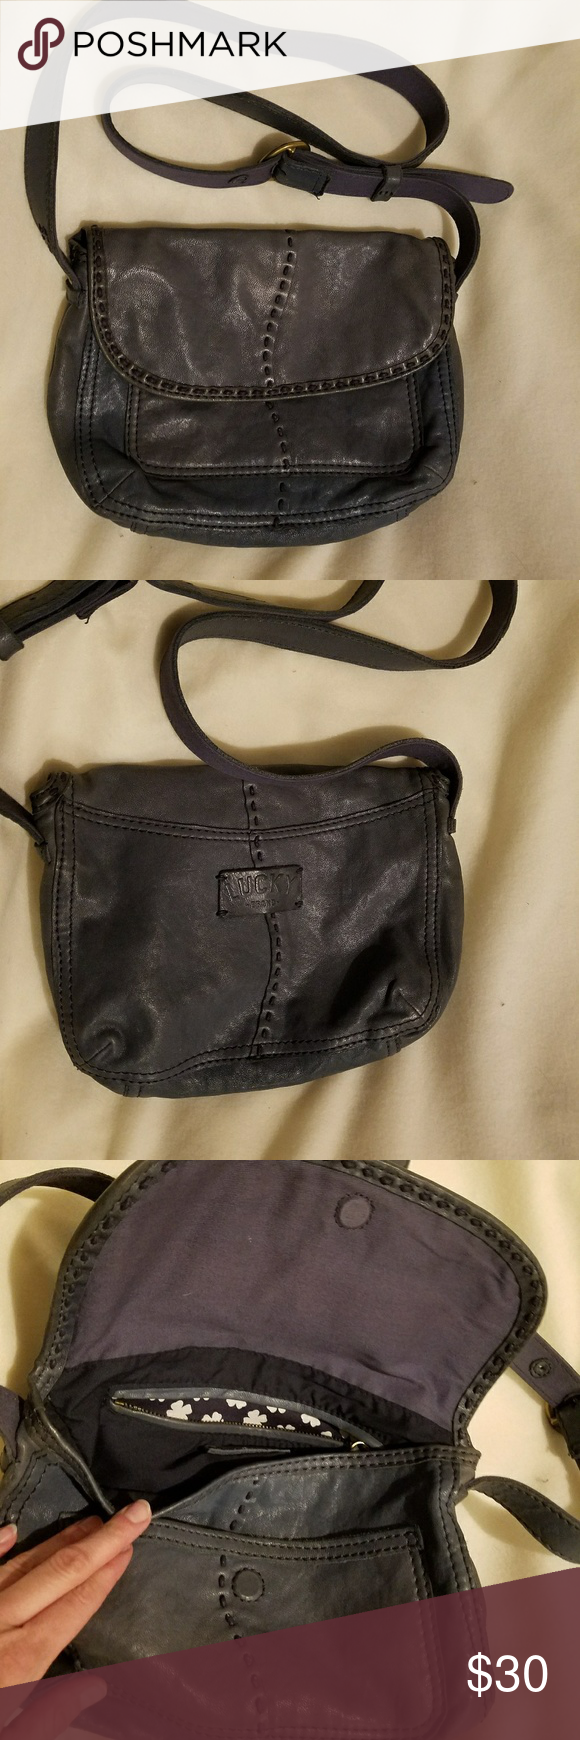 Lucky Brand Crossbody This is made of Italian lambskins. It's very soft and supple with no signs of wear. It has been treated with a leather conditioner recently also. Lucky Brand Bags Crossbody Bags